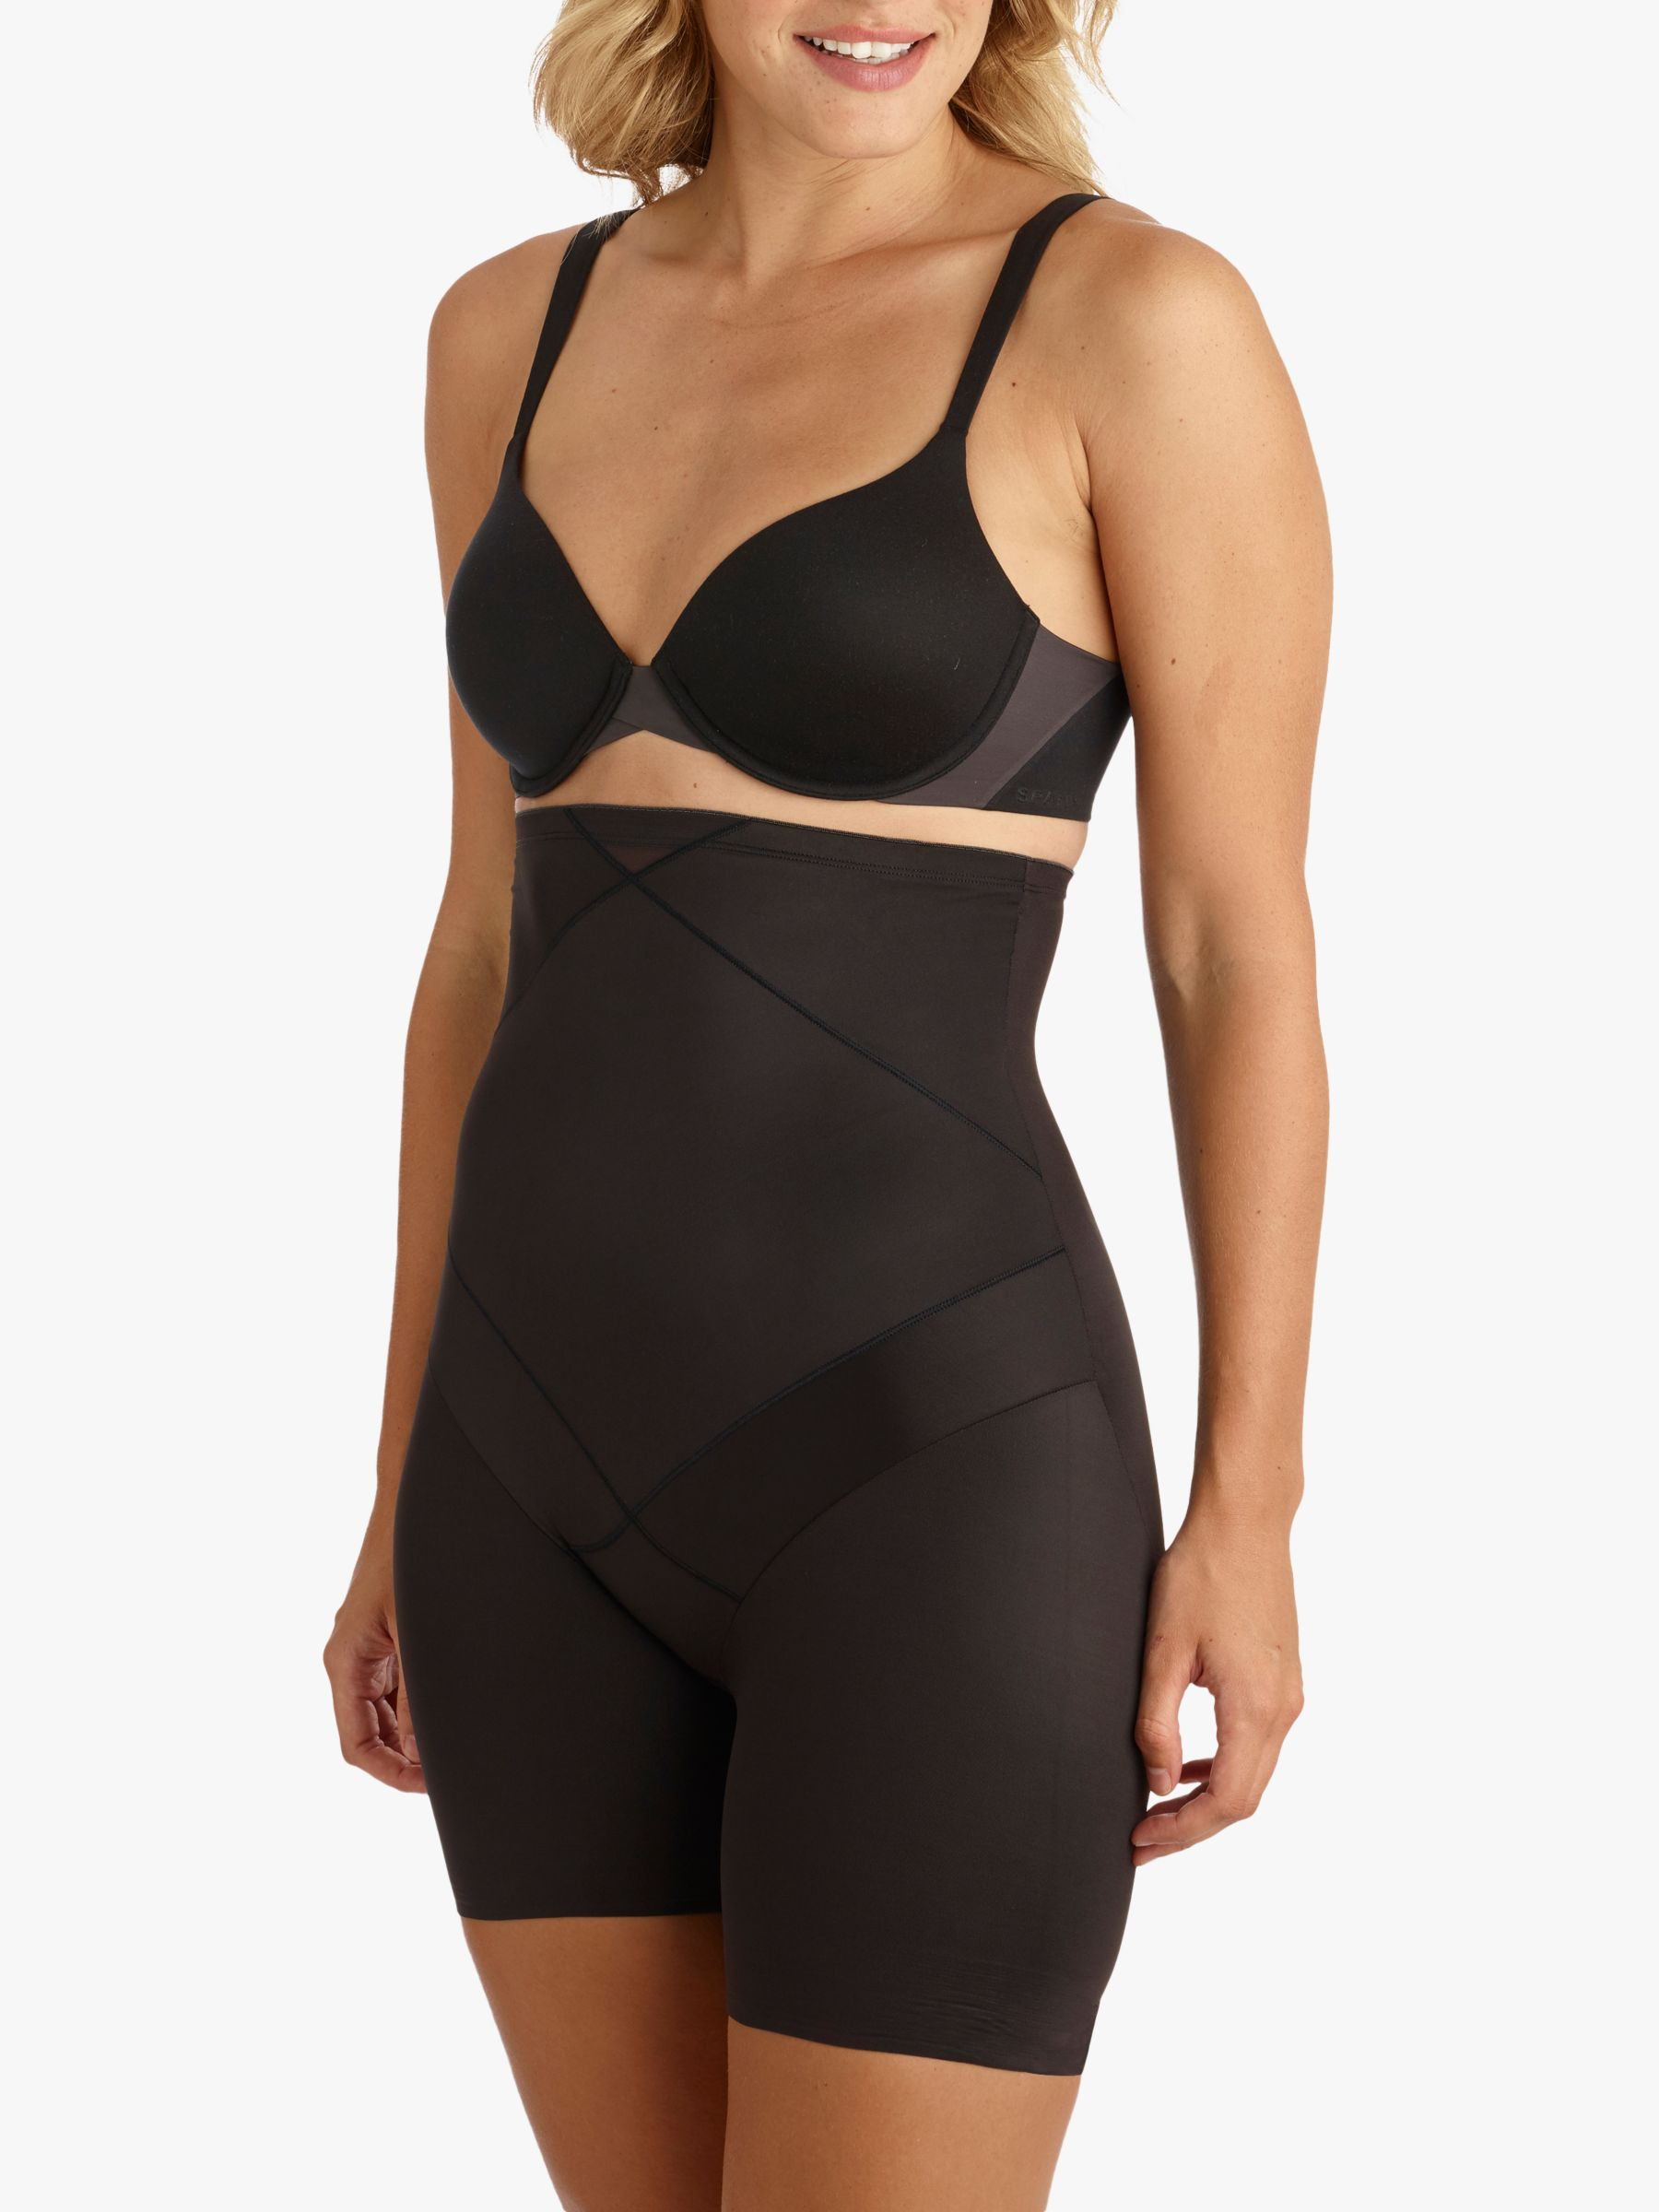 Miraclesuit Miraclesuit High Waist Thigh Slimming Shorts